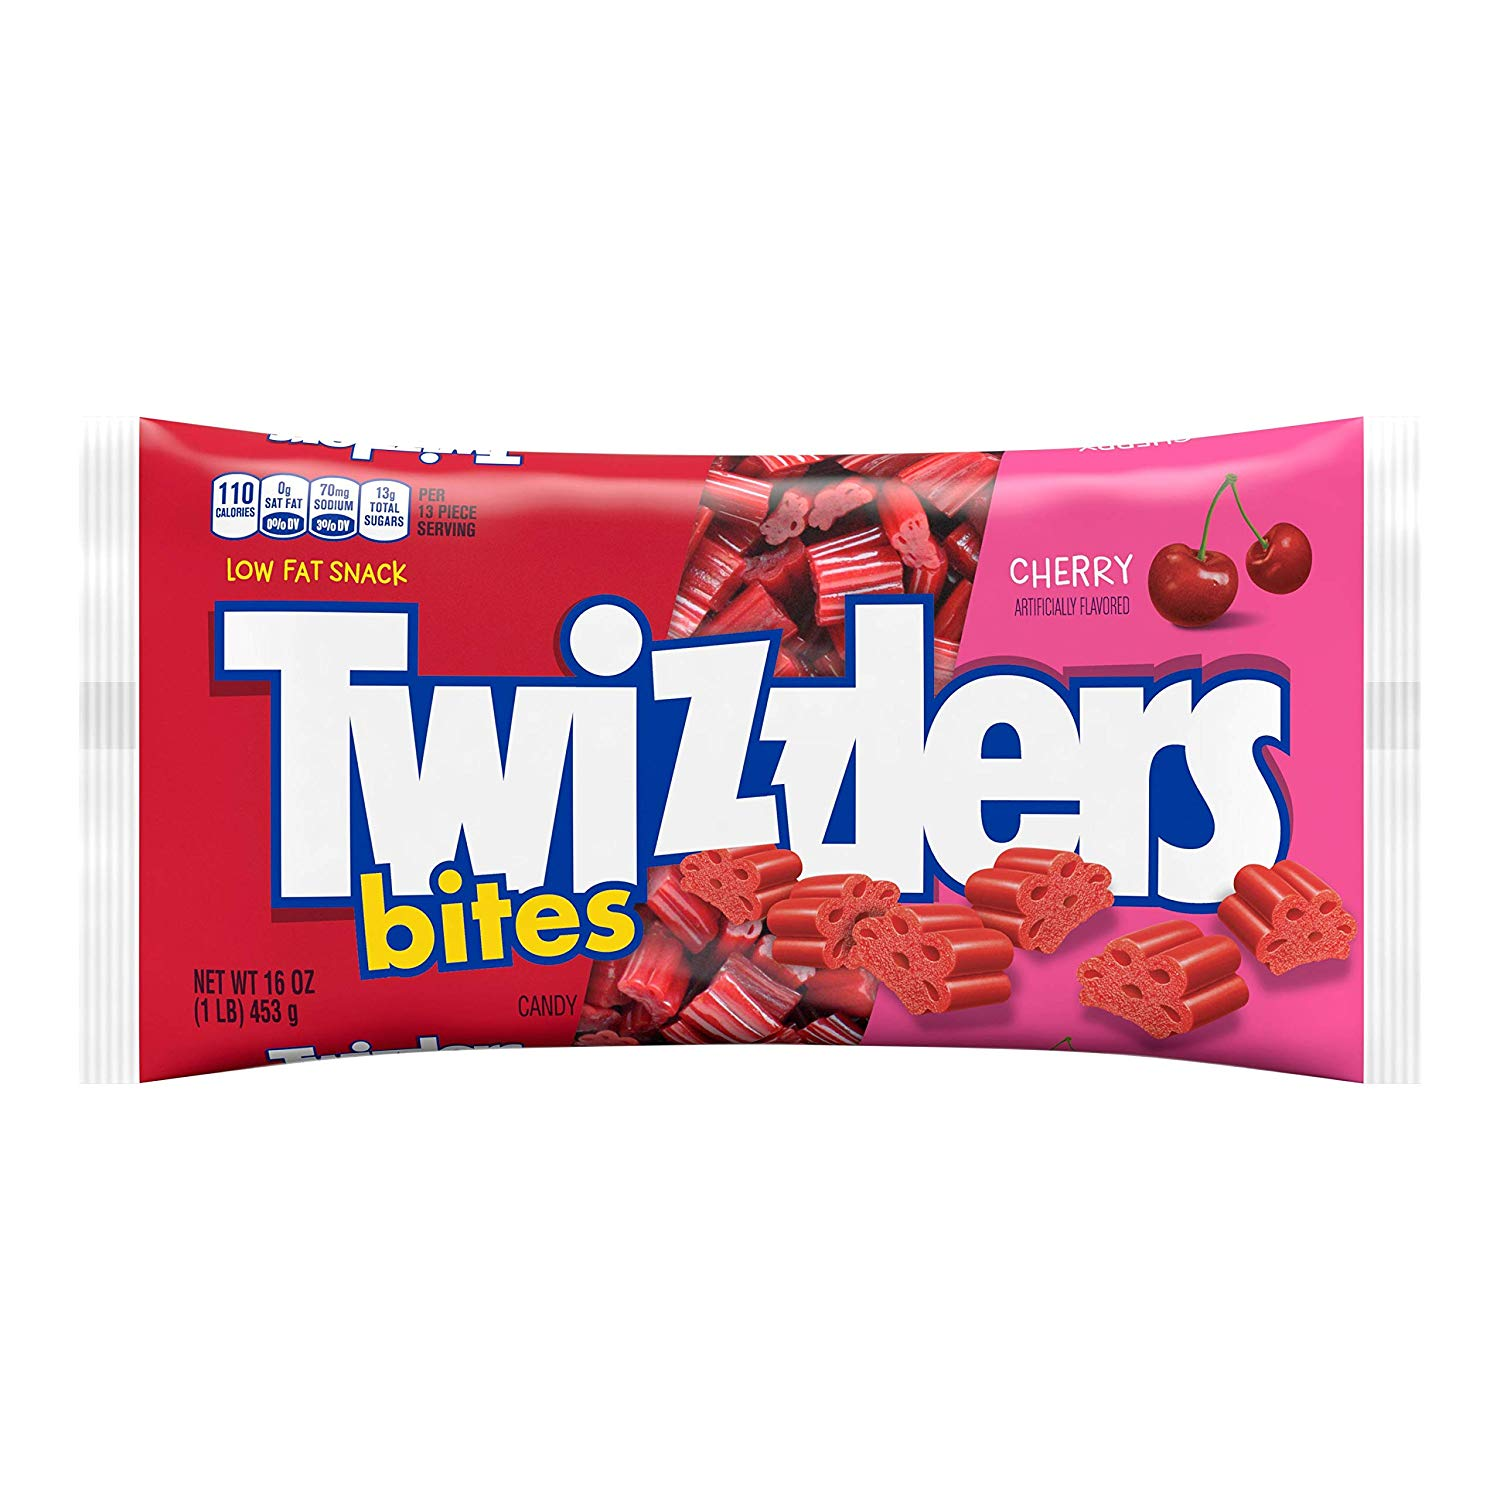 Twizzlers Bites Only $1.50!